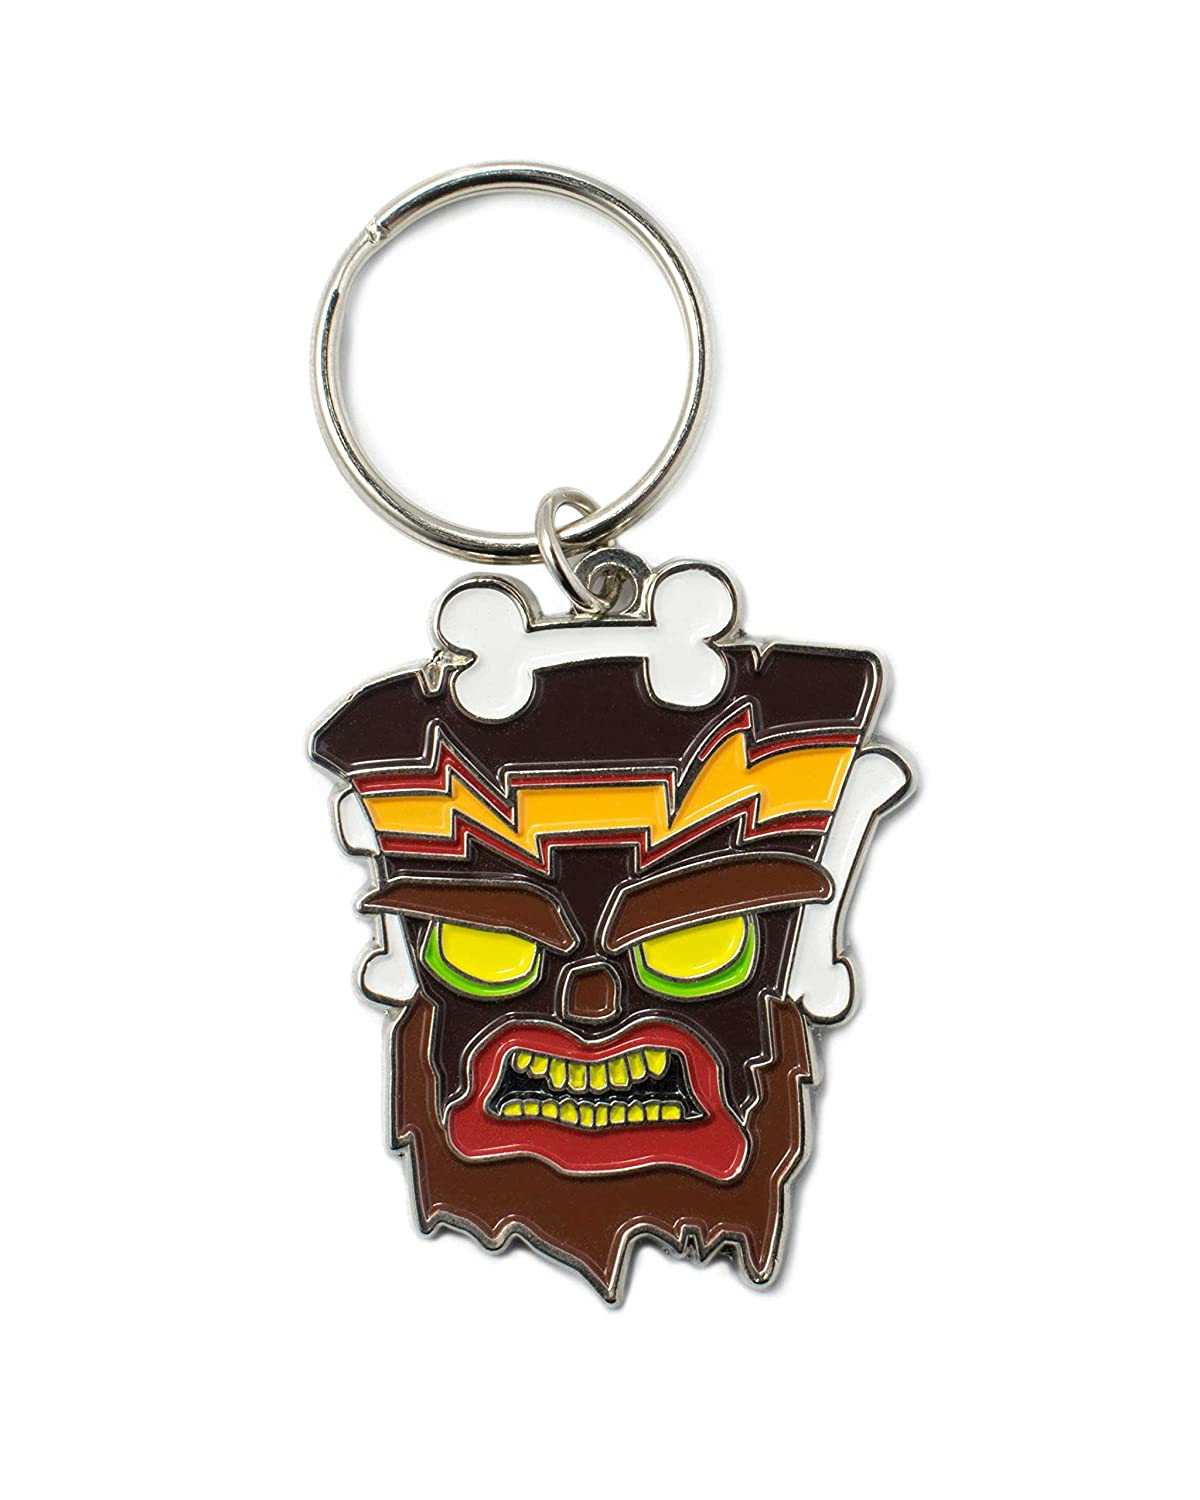 Amazon.com: Crash Bandicoot PGEEKRRUA36921 Official Uka Uka ...